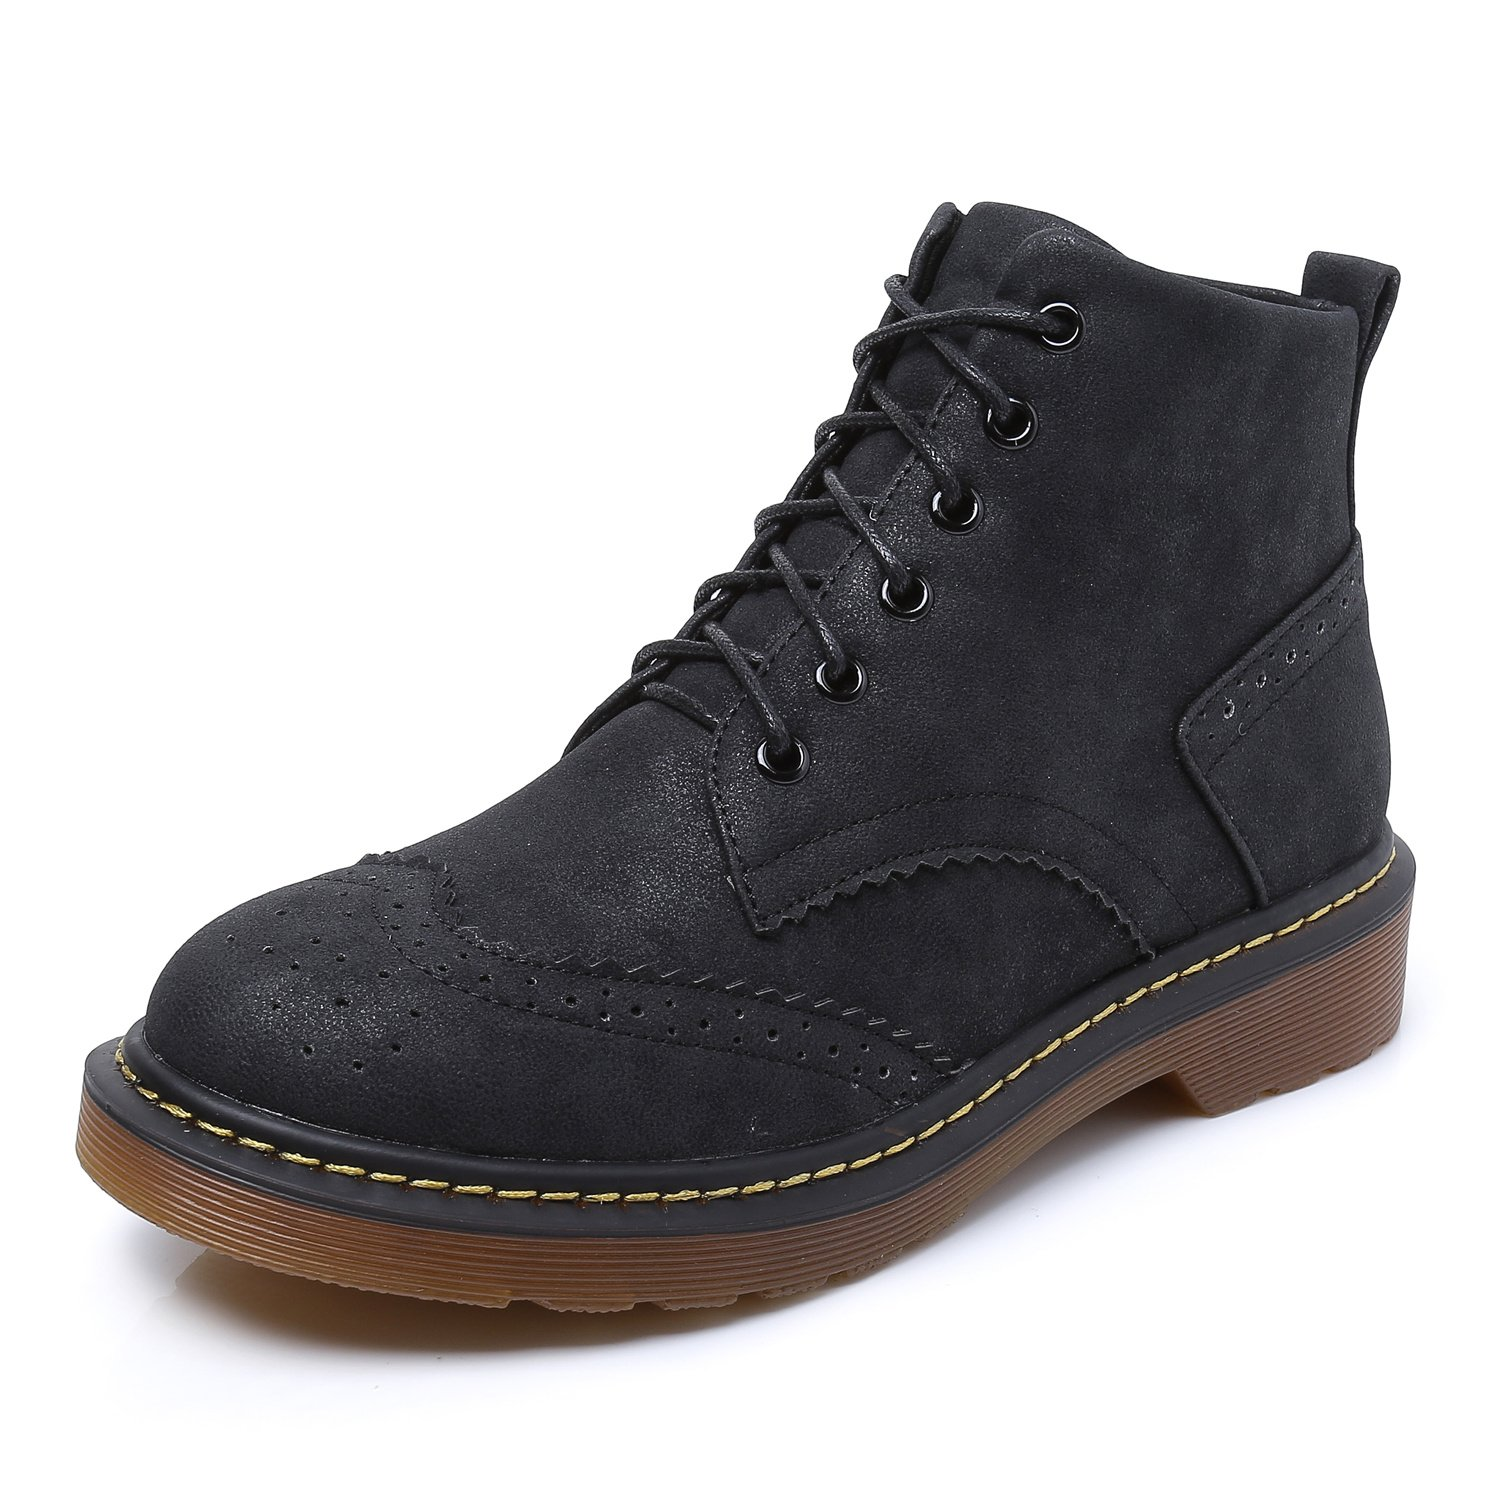 Smilun Girl¡¯s Ankle Combat Boots Mid Heel Nubuck Leather Derby Classic Borgues Boot for Girl Black US6.5